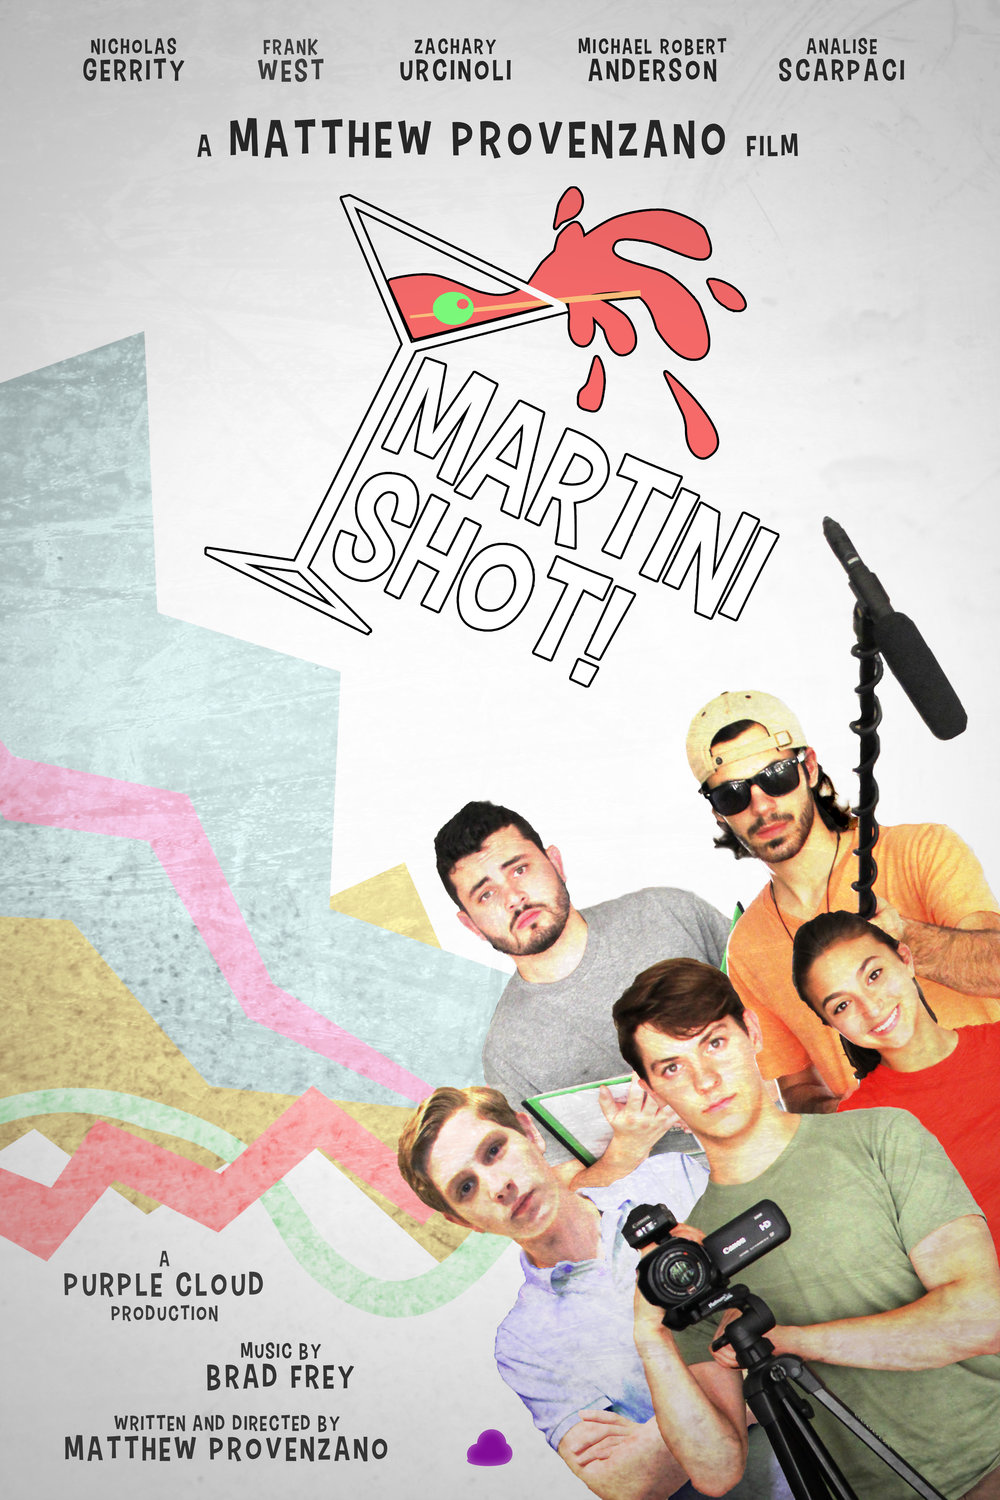 martinishotposter7.jpg